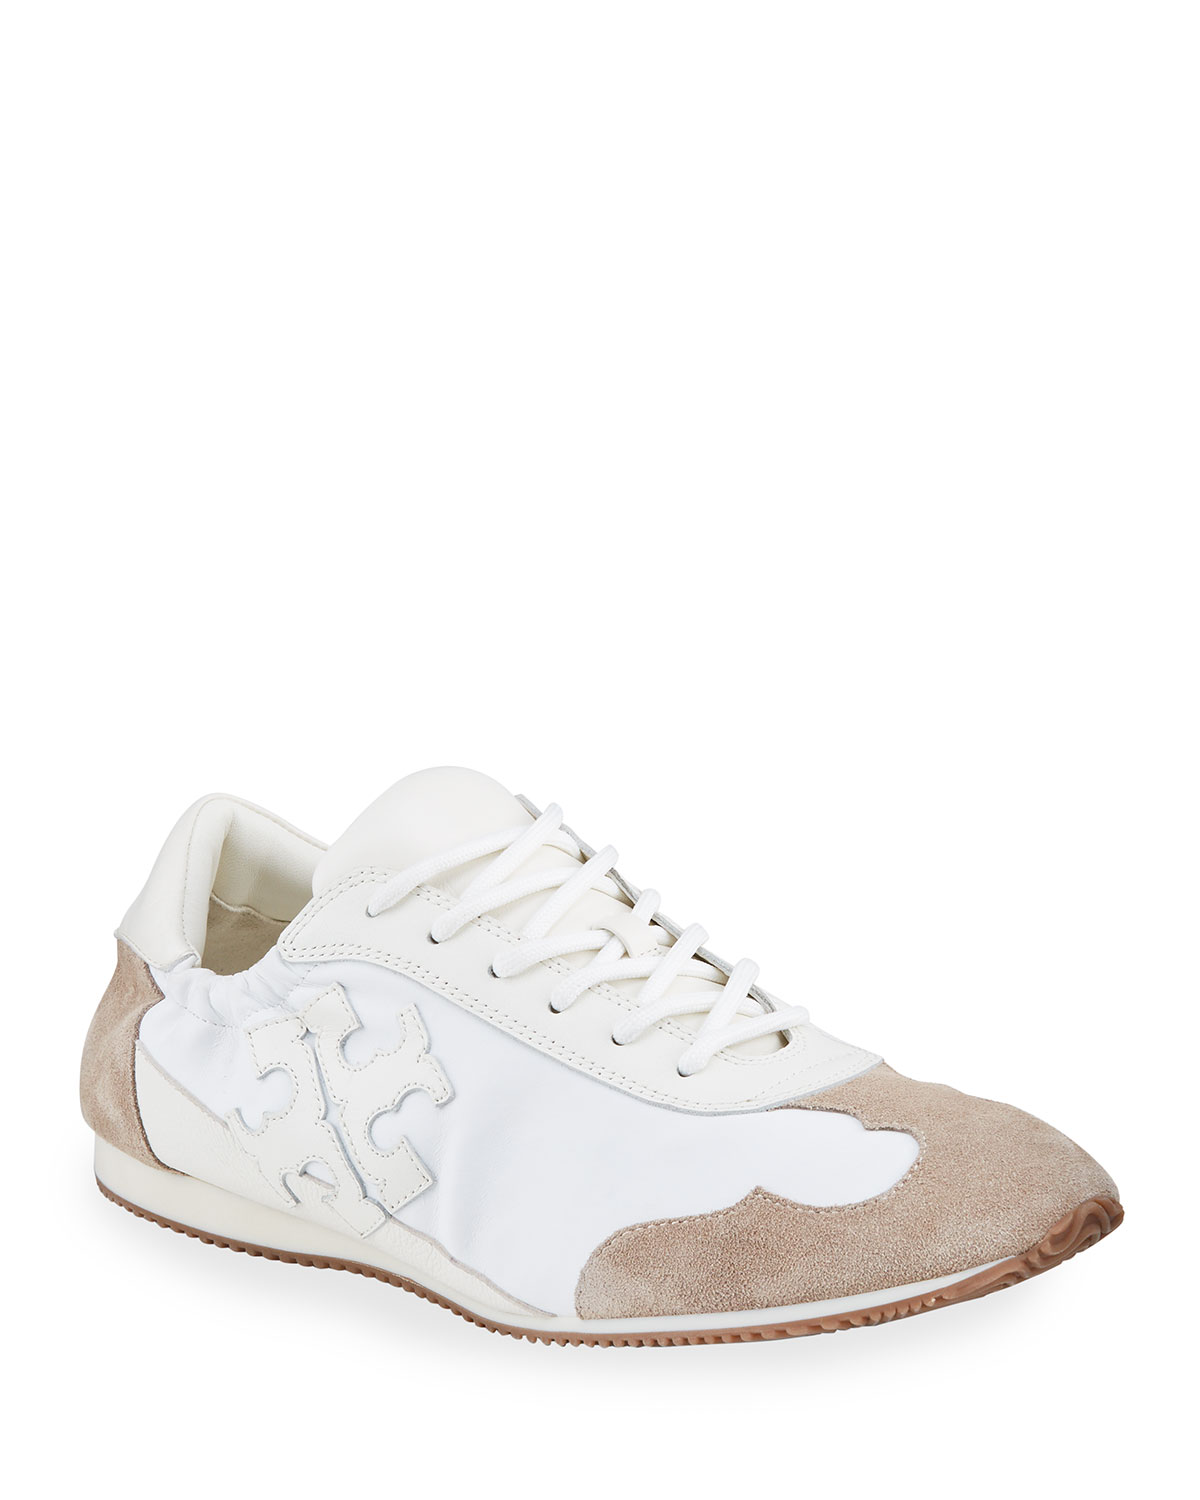 Tory Bicolor Mixed Leather Trainer Sneakers